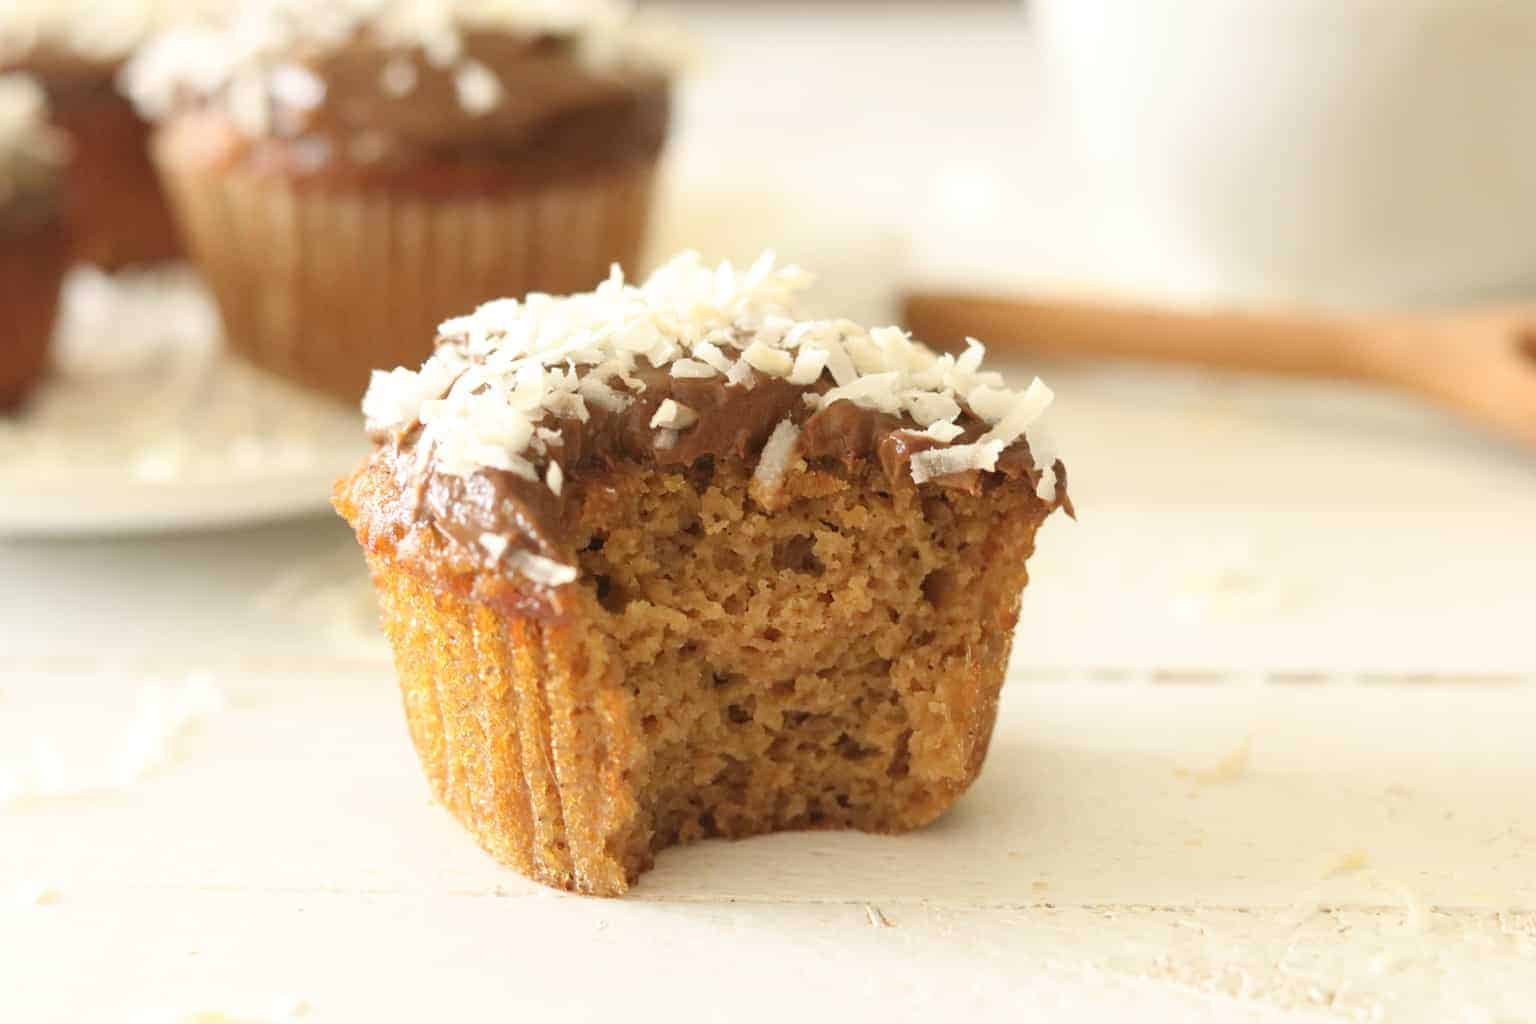 Vanilla cupcake with chocolate frosting topped with coconut.